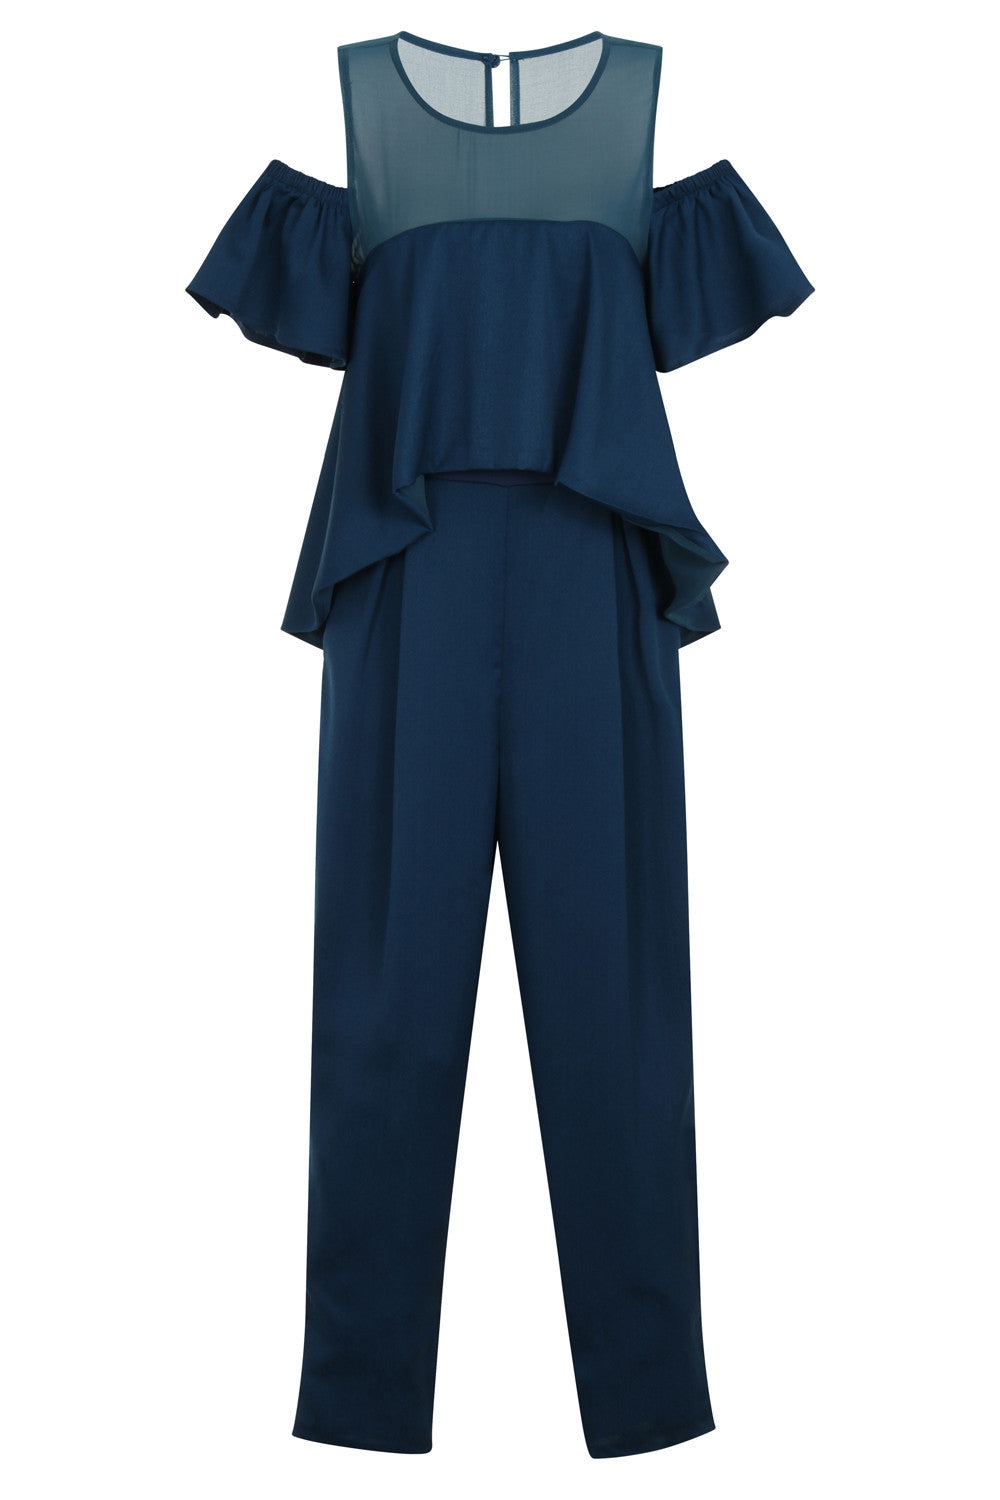 RUFFLE SLEEVE COLD SHOULDER JUMPSUIT - Darccy & Soma London